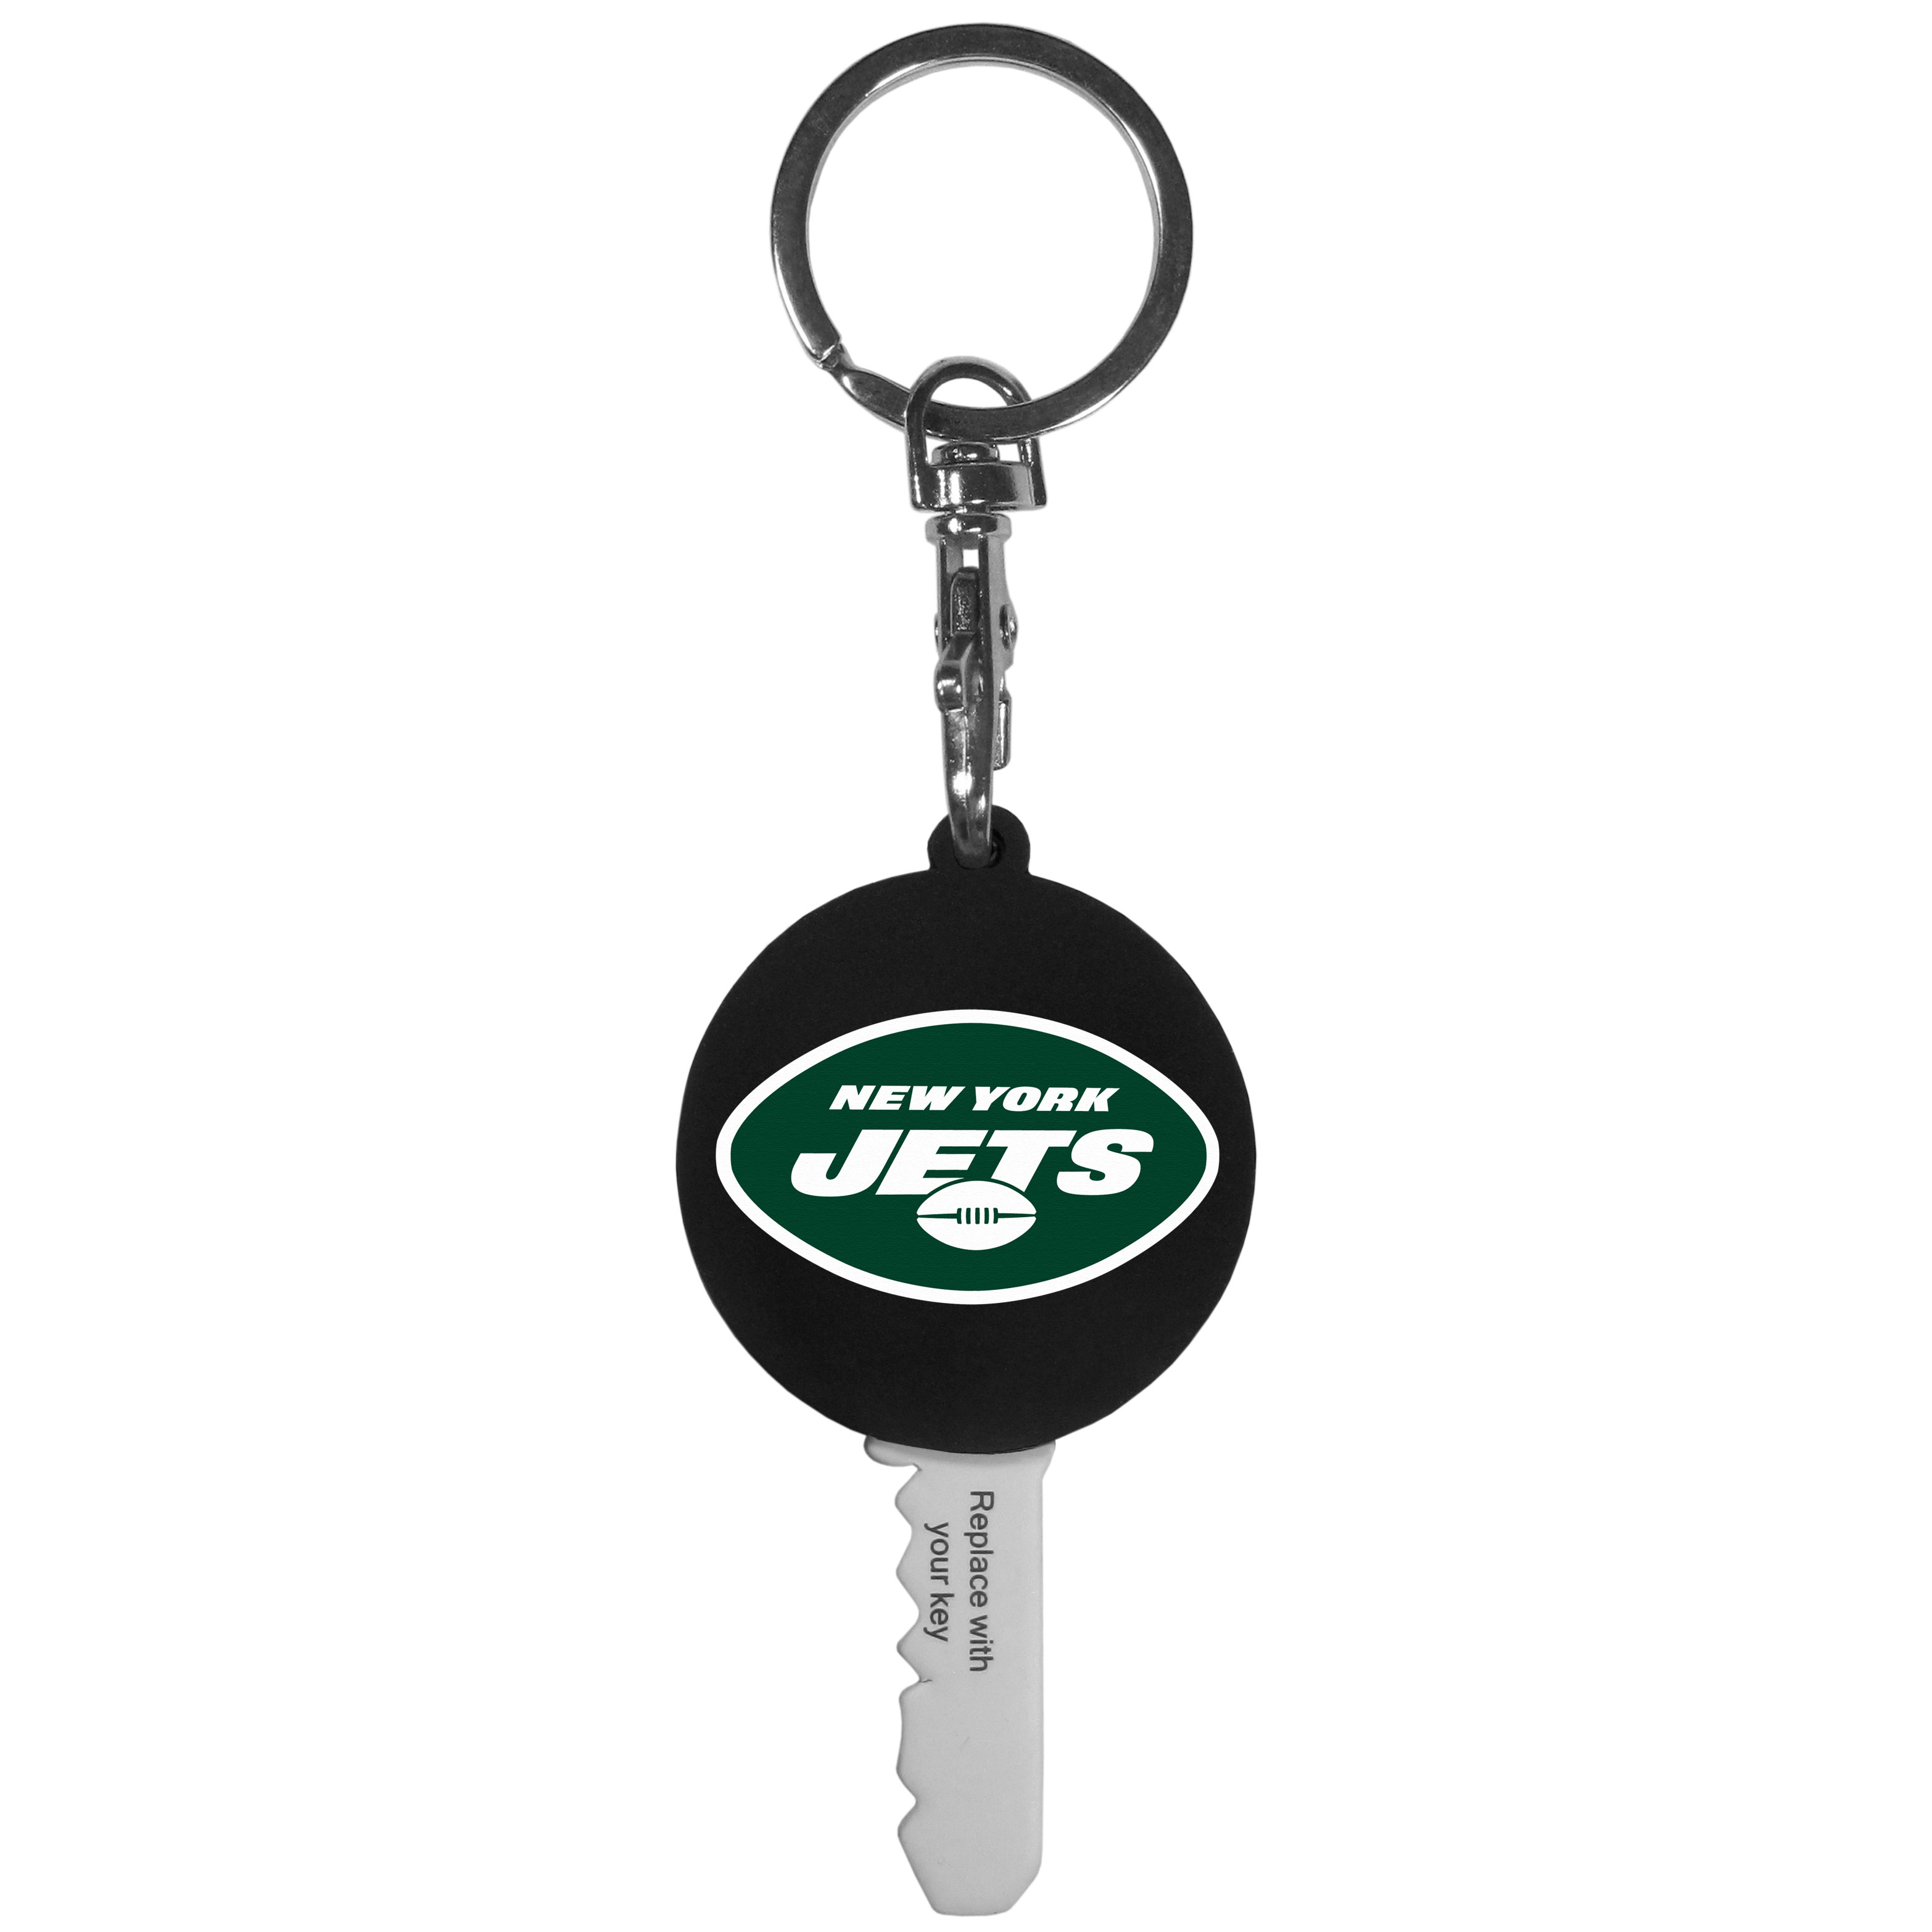 New York Jets Mini Light Key Topper - This super handy little key topper has a built in mini light that illuminates the lock so you do not have to fumble in the dark trying to open your door. You slide your house key into the top of the rubber key topper and your ready to go. The topper features a New York Jets logo on the front of the topper.